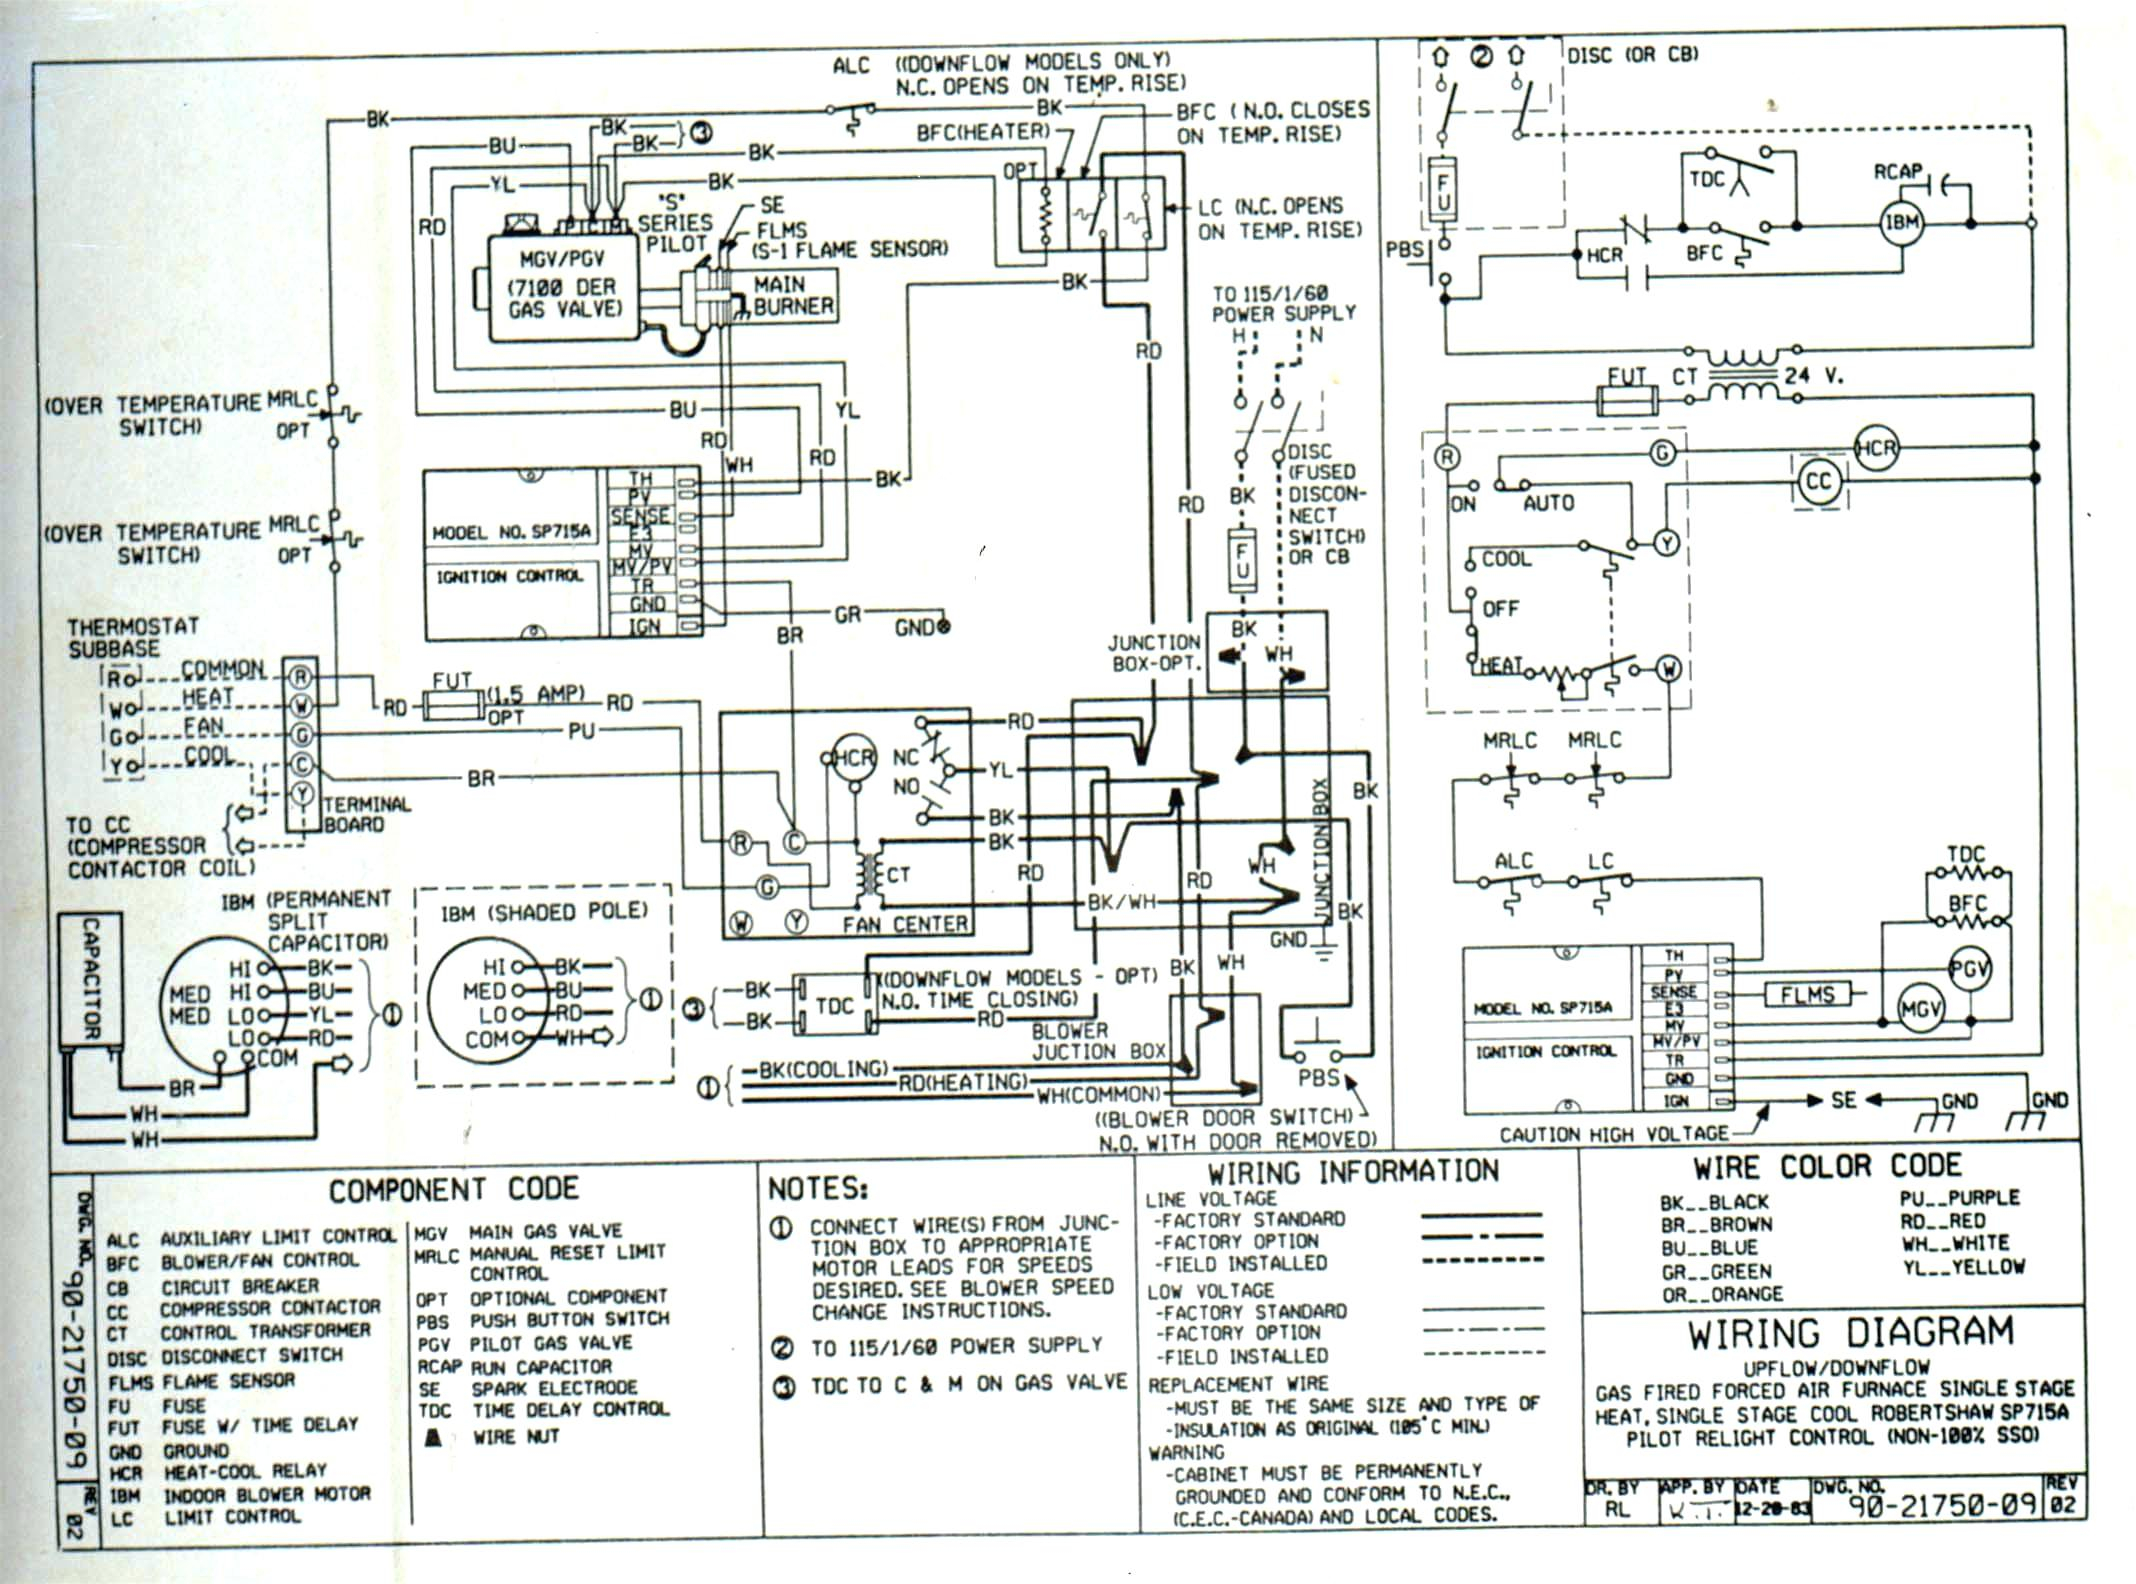 trane air conditioner wiring diagram gibson sg furnace sample collection